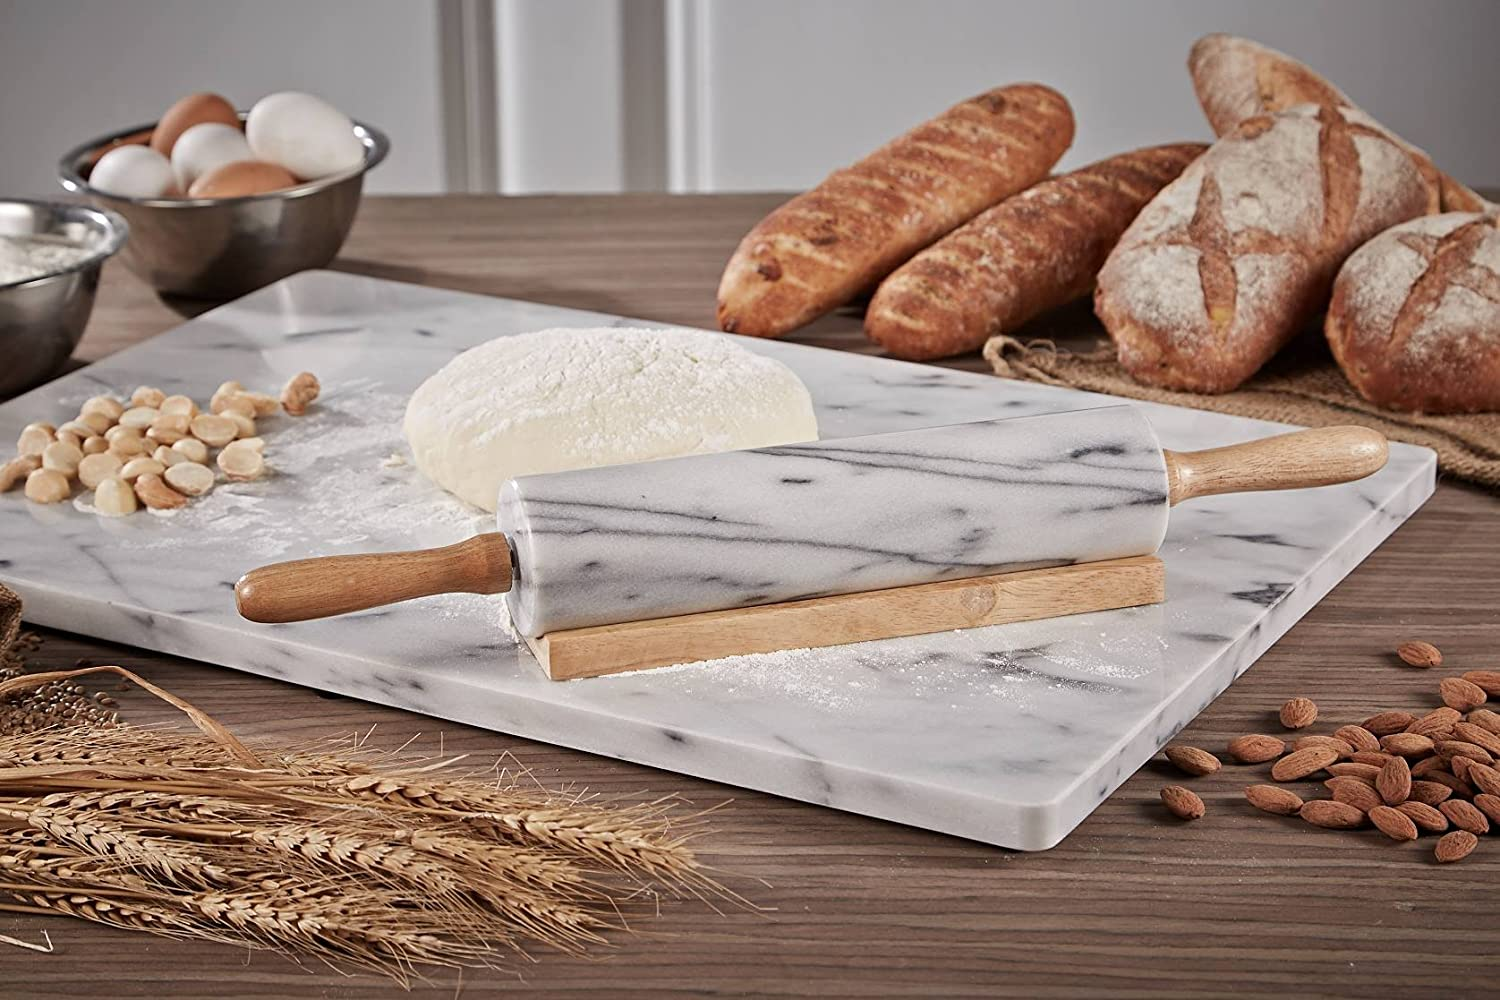 Premium Quality JEmarble Adjustable Rolling Pin with Silicone Guide Rings